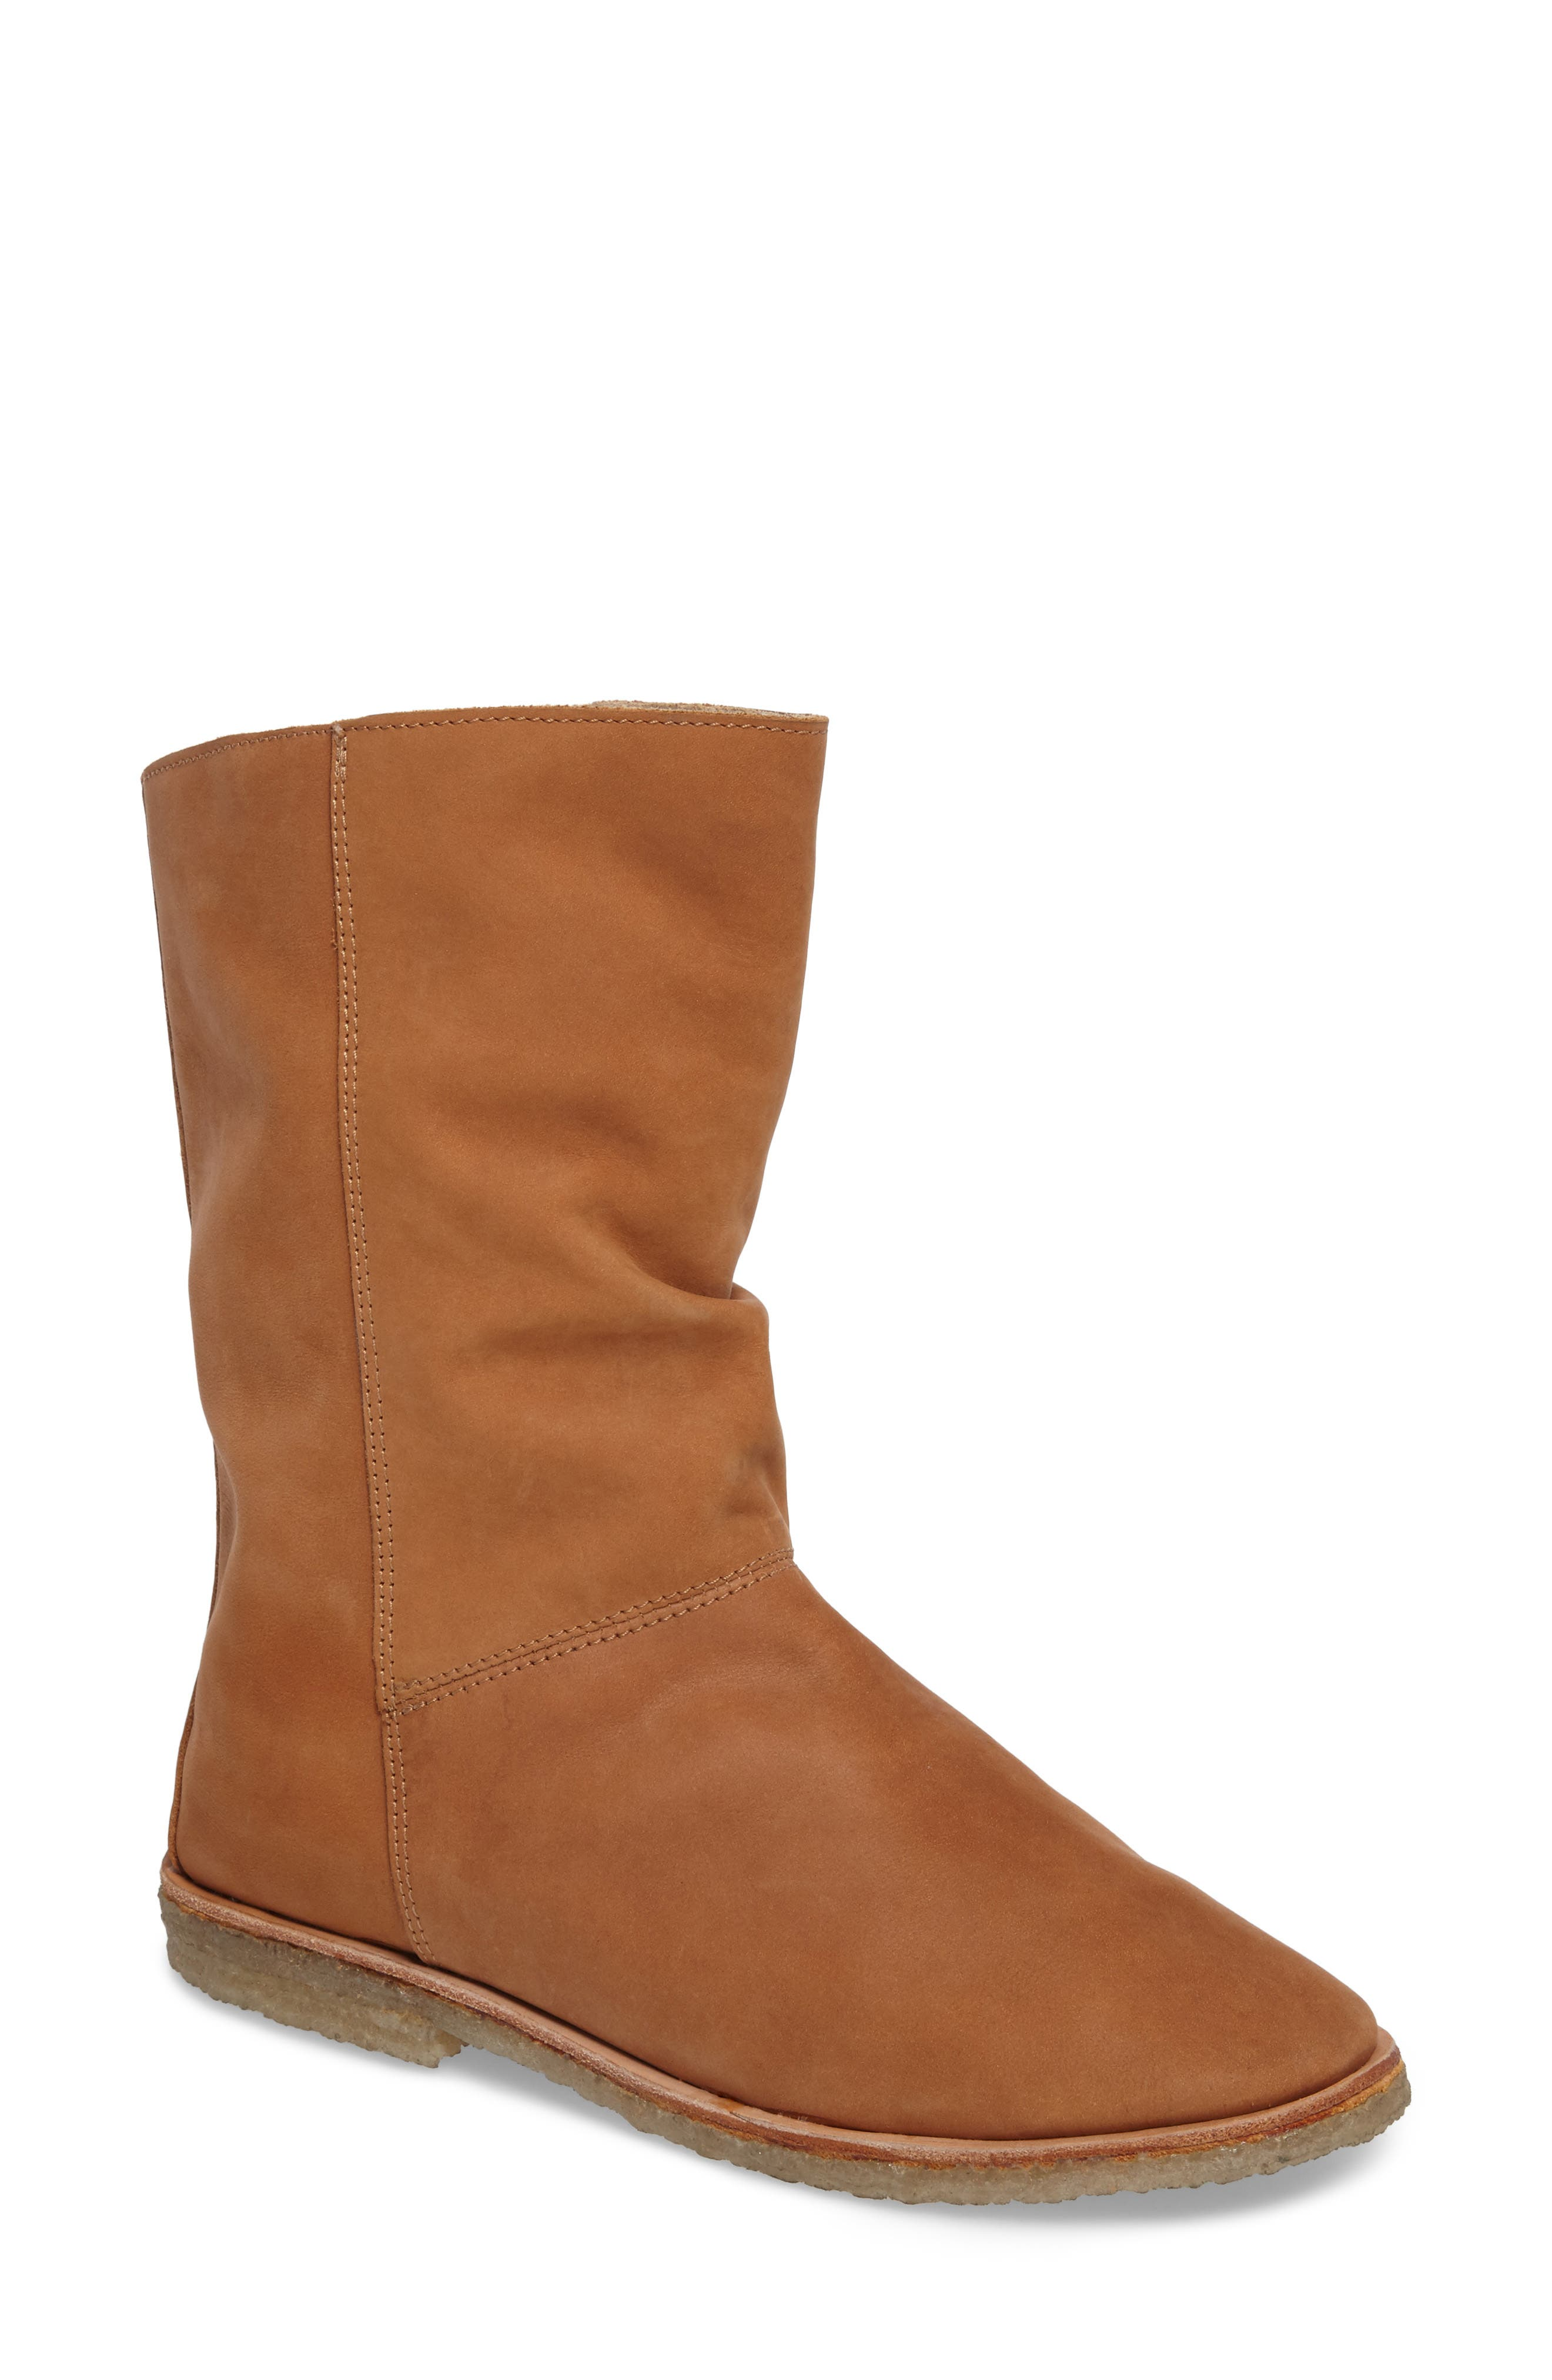 Owl Slouchy Bootie,                             Main thumbnail 2, color,